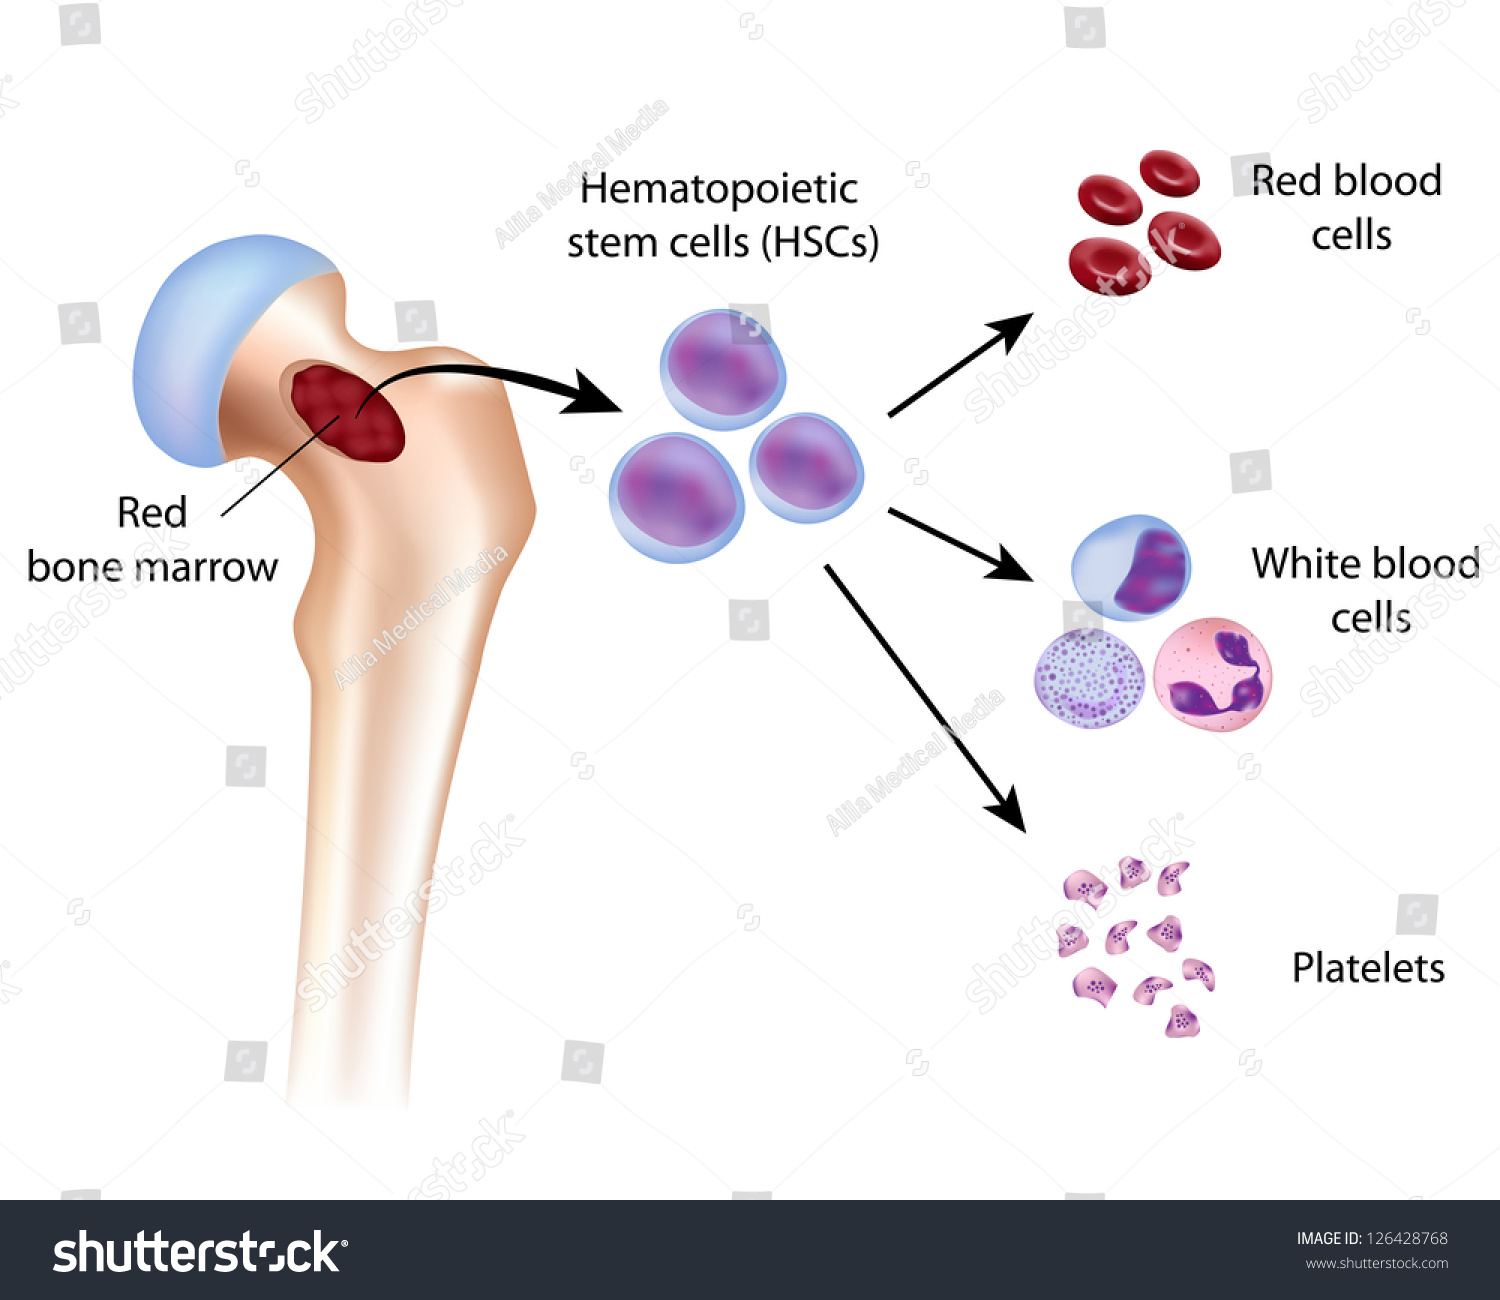 Blood cell formation red bone marrow stock illustration 126428768 blood cell formation from red bone marrow pooptronica Gallery